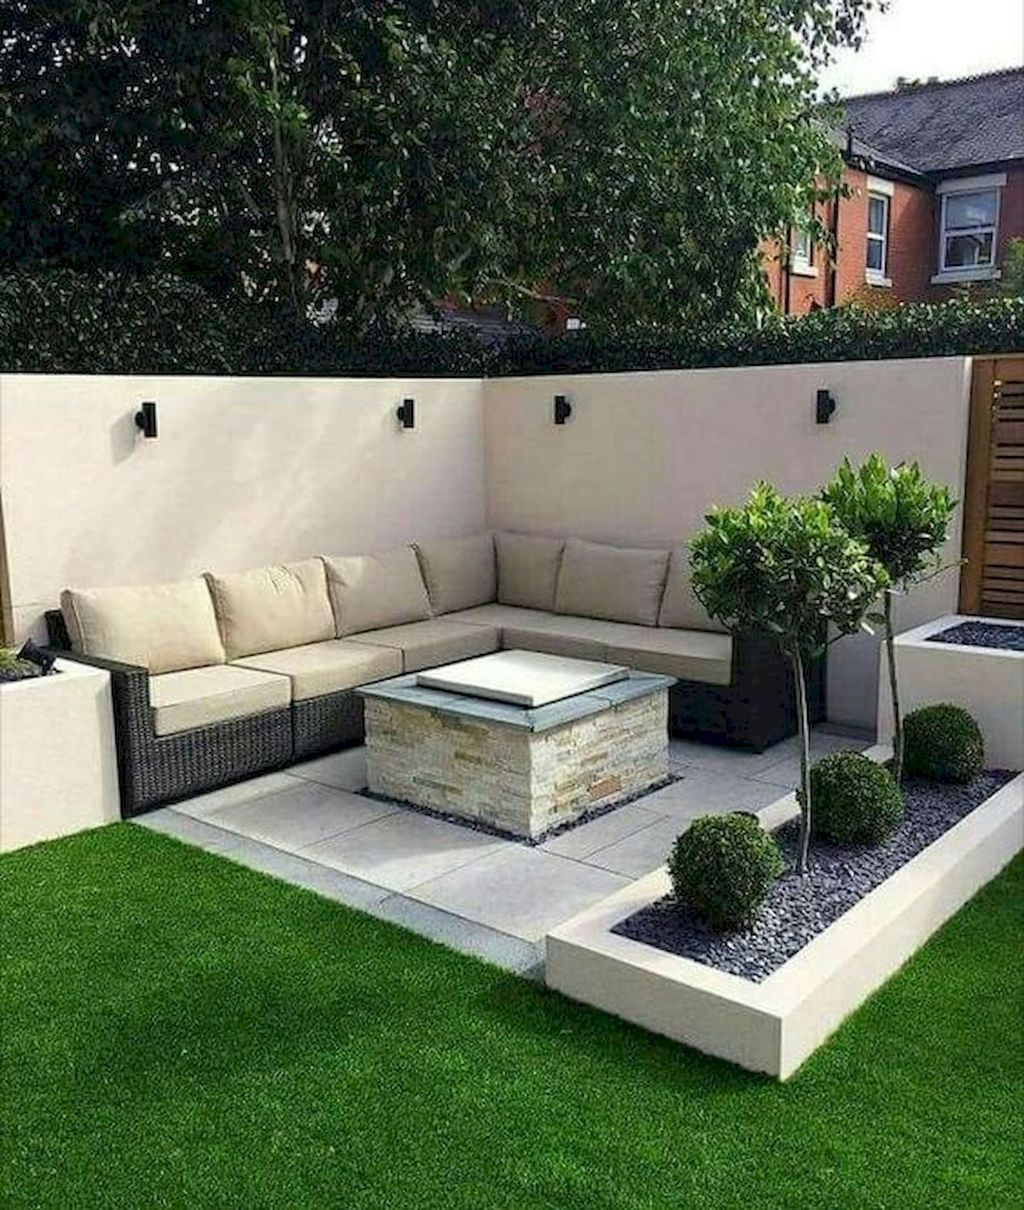 Excellent Backyard Landscaping Ideas That Looks Cool 29